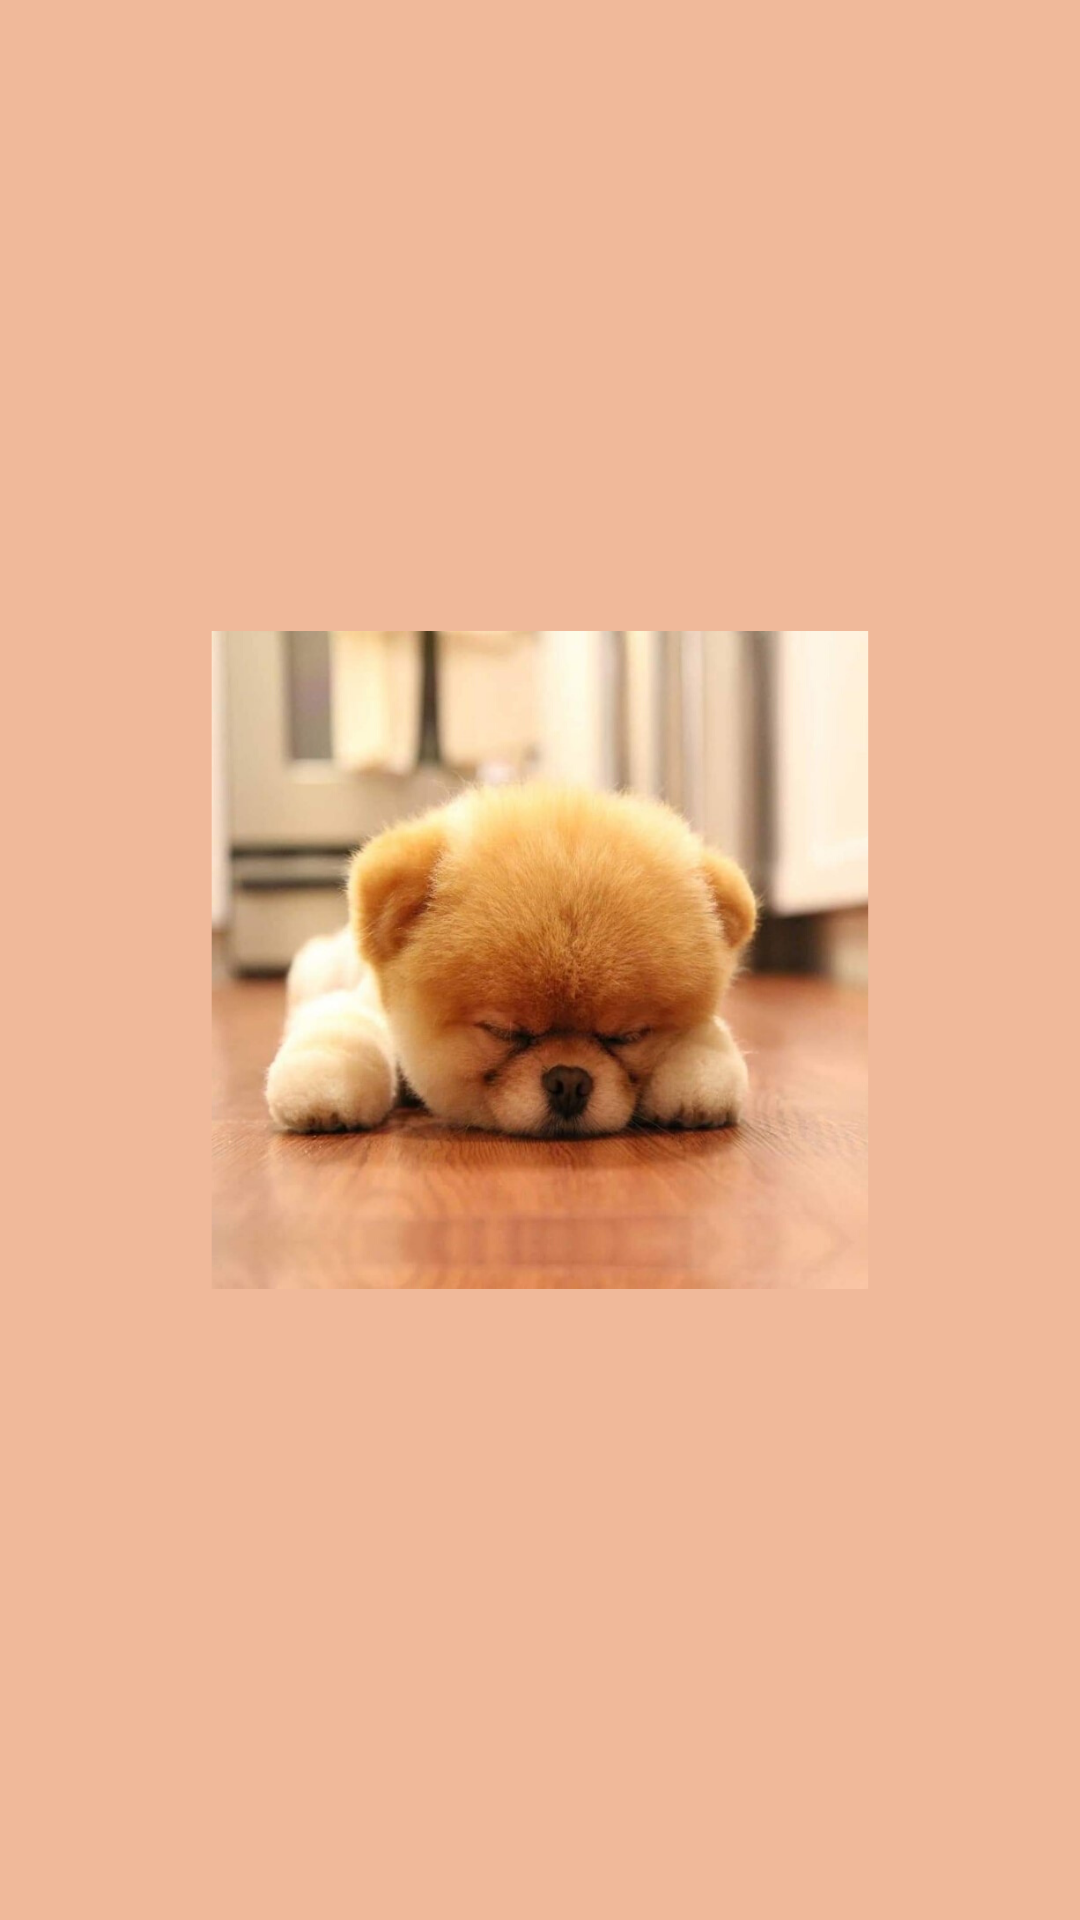 I Created This Wallpaper But Credits To The Owner Of The Picture Cute Dog Wallpaper Cute Puppy Wallpaper Cute Baby Animals